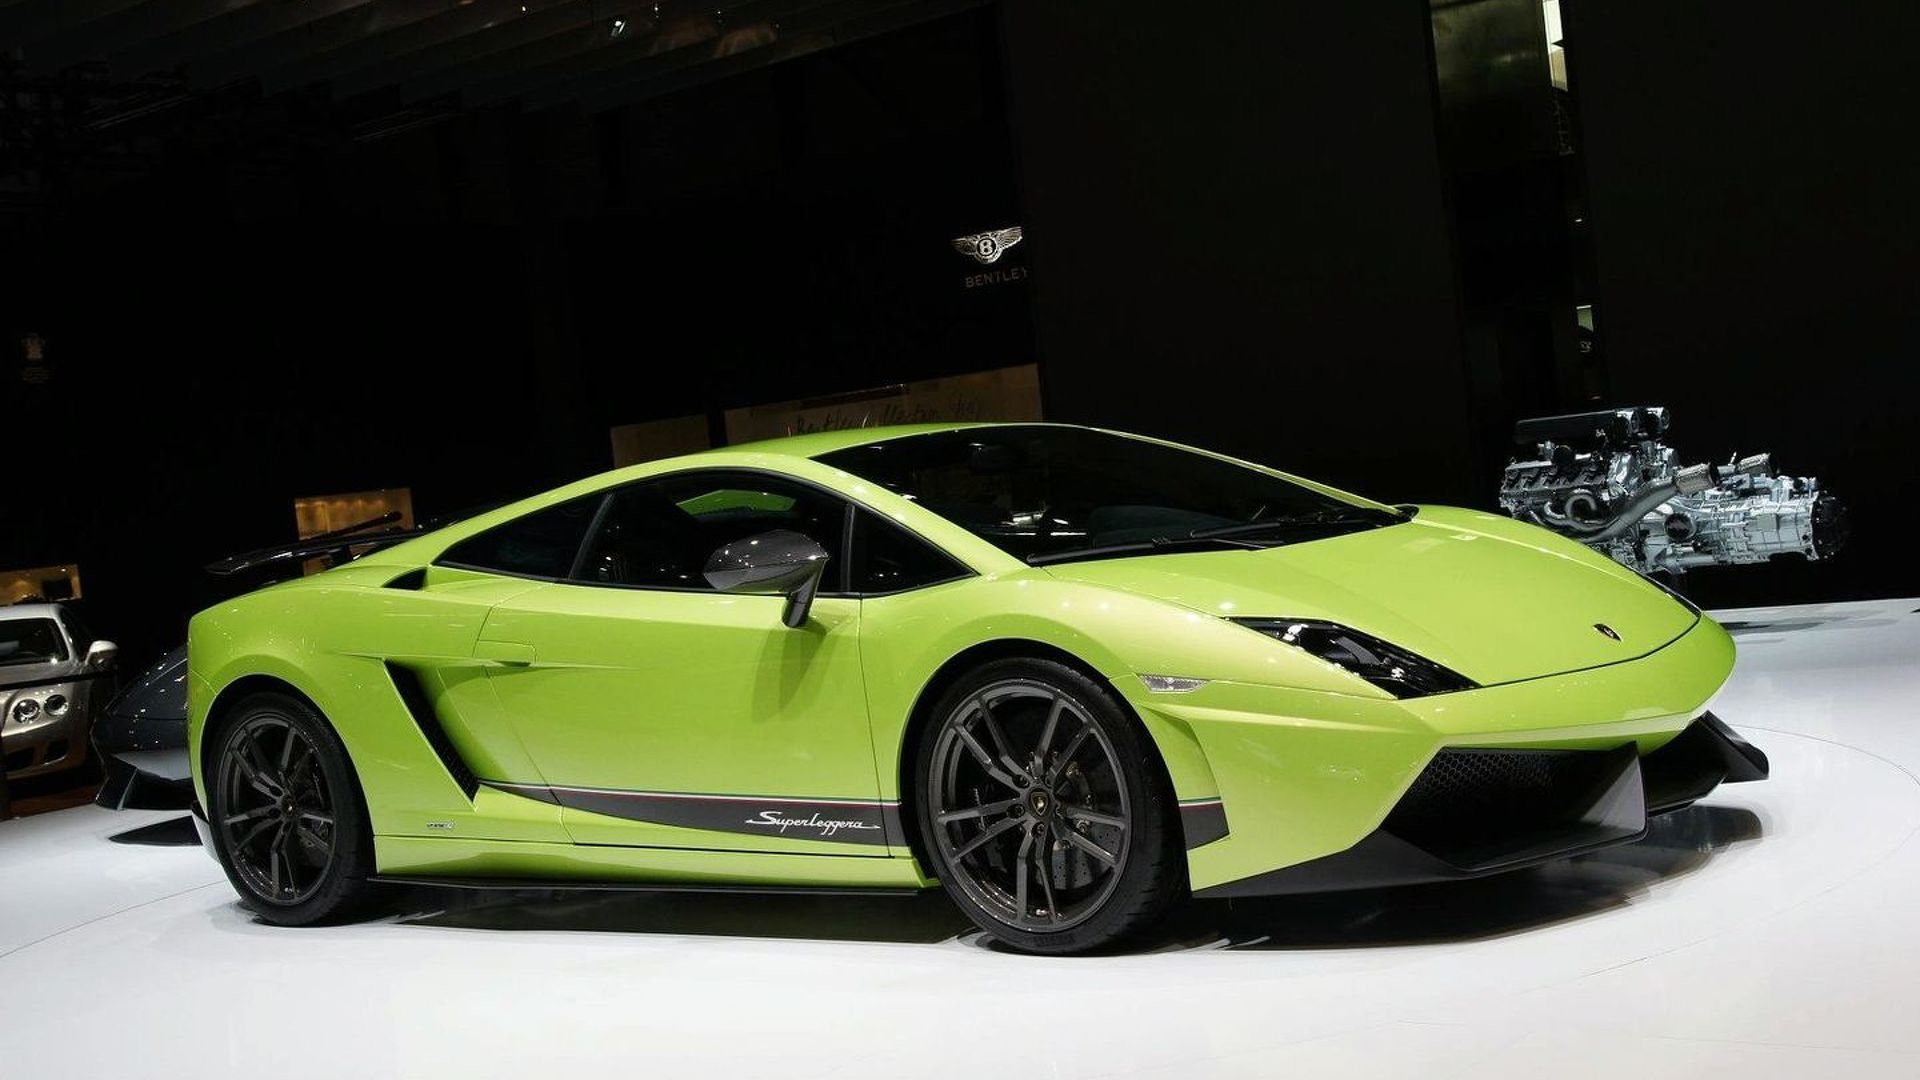 Lamborghini Gallardo 570 4 Superleggera Officially Released